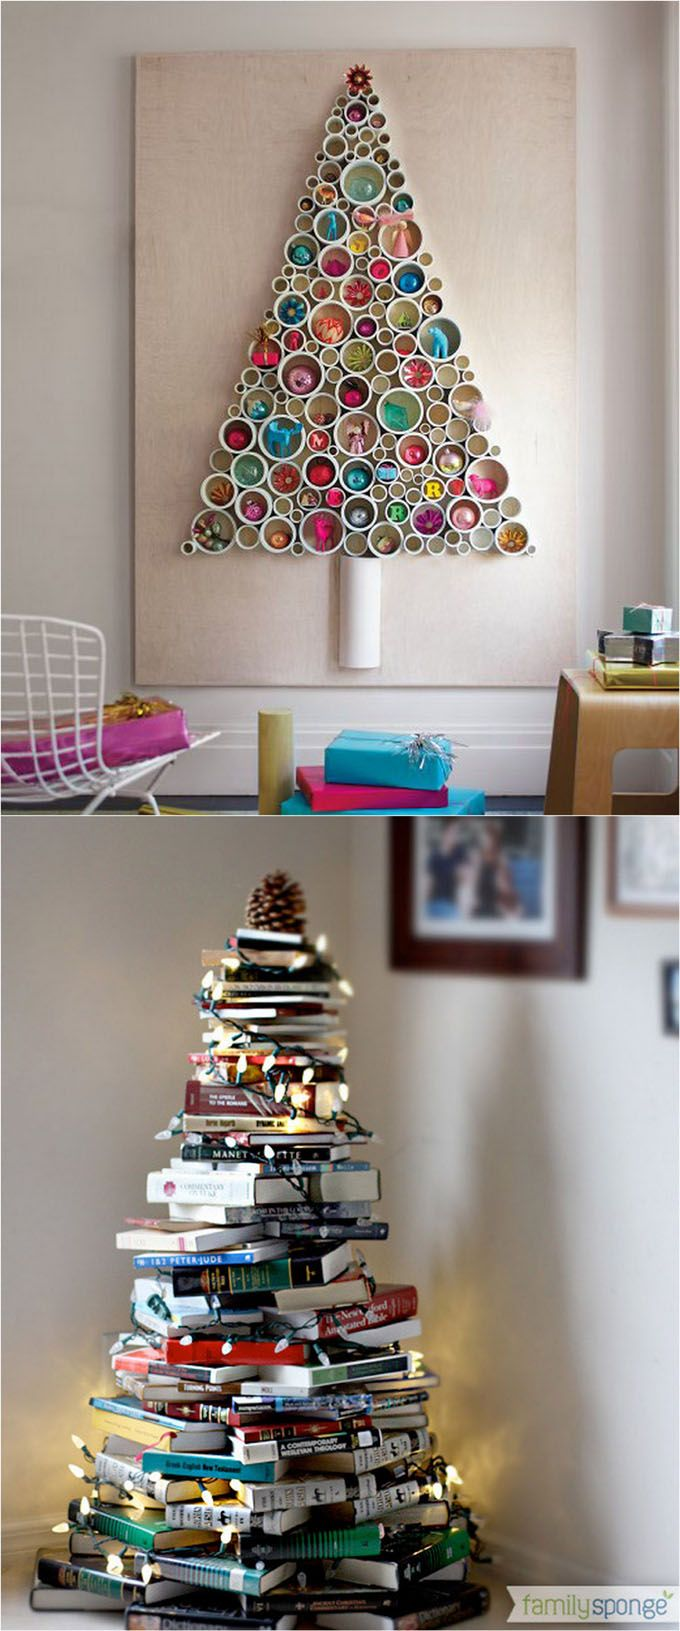 18 unconventional and beautiful diy christmas trees ideas to create unique christmas decorations for your home perfect for any space in your home - Christmas Decoration Ideas Diy